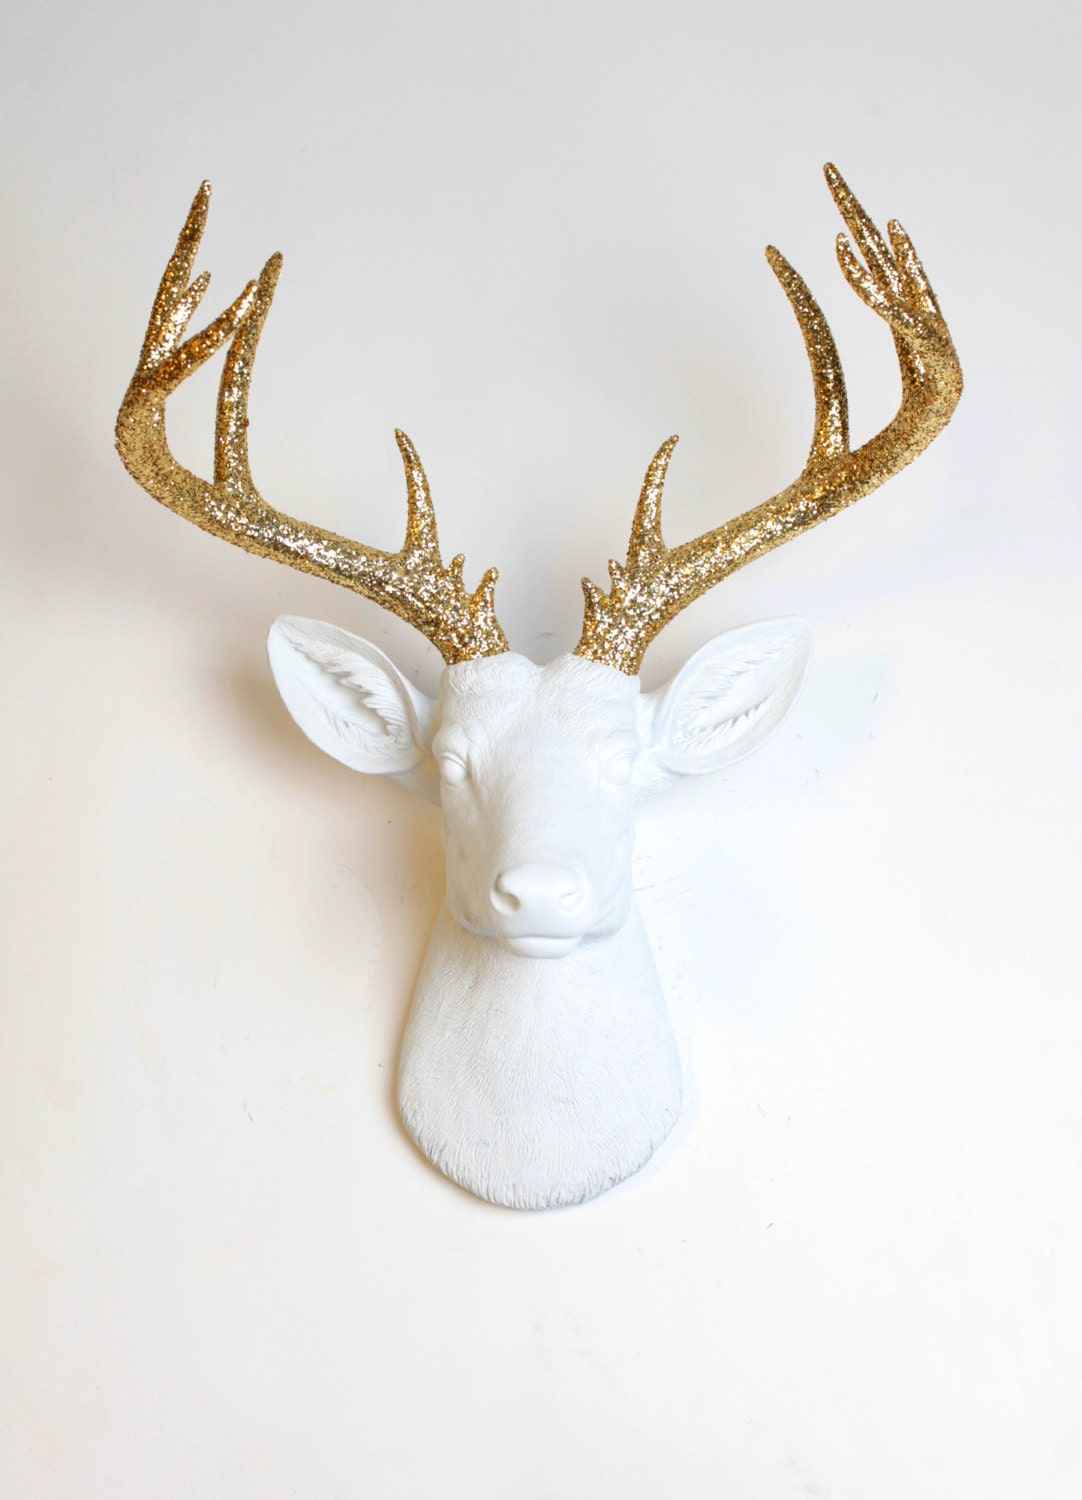 Deer head wall mount the xl winston white resin deer head - Applique murale tete de cerf ...